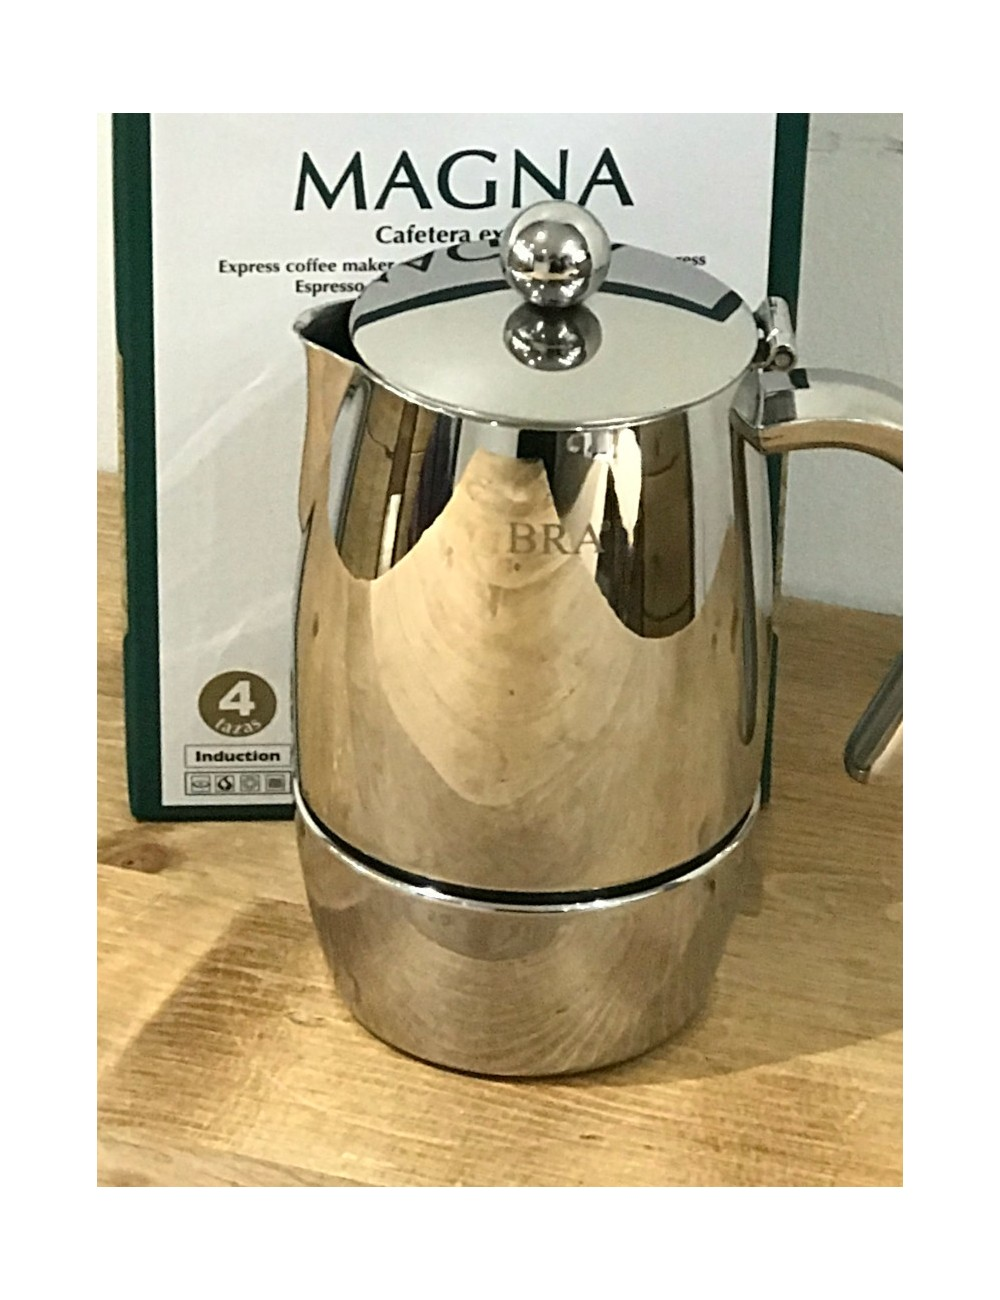 magna cafetiere italienne inox tous feux